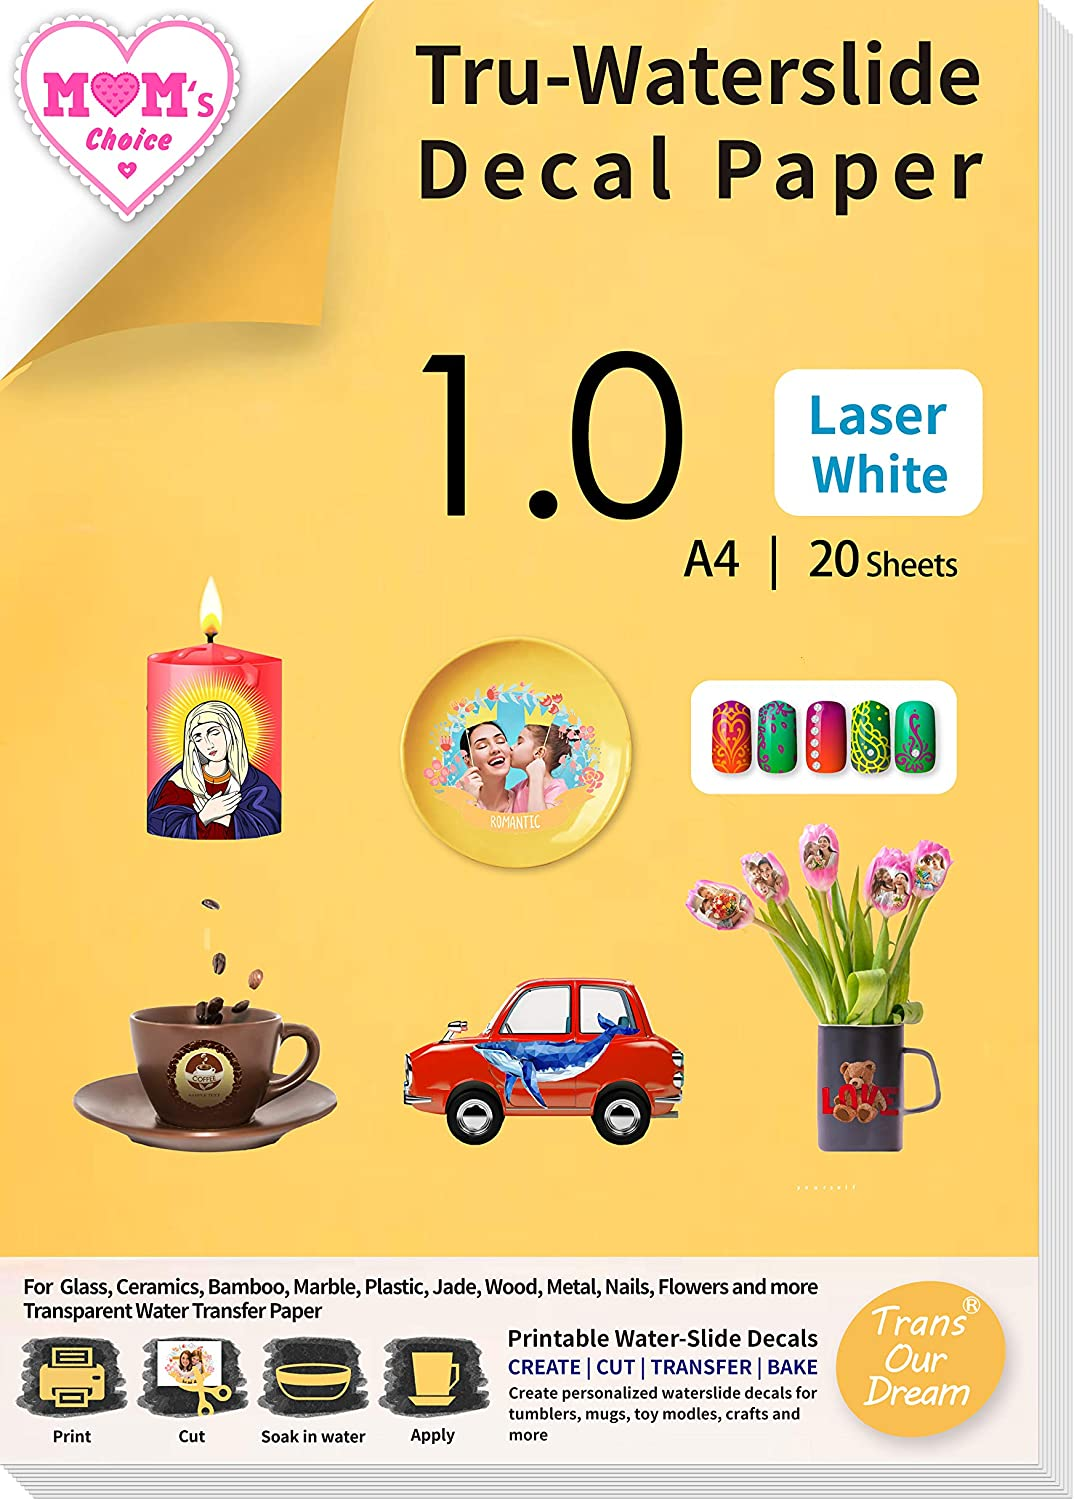 Max 81% OFF TransOurDream Water Slide Decal 35% OFF Paper Laser for 2 WHITE Printer